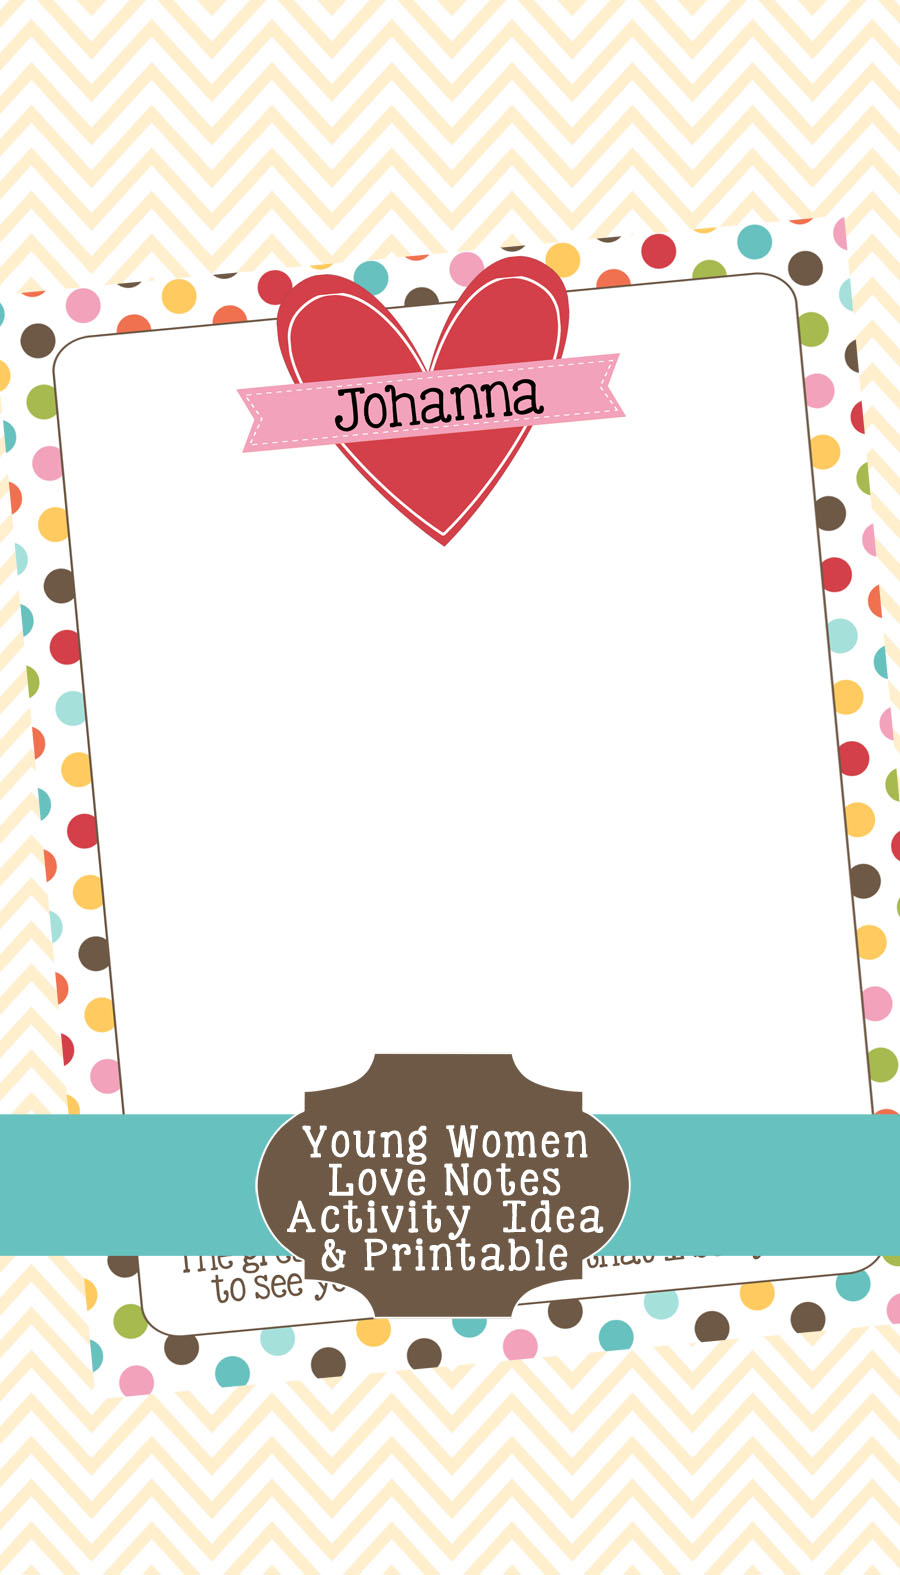 Young Women Love Notes Activity Idea & Printable